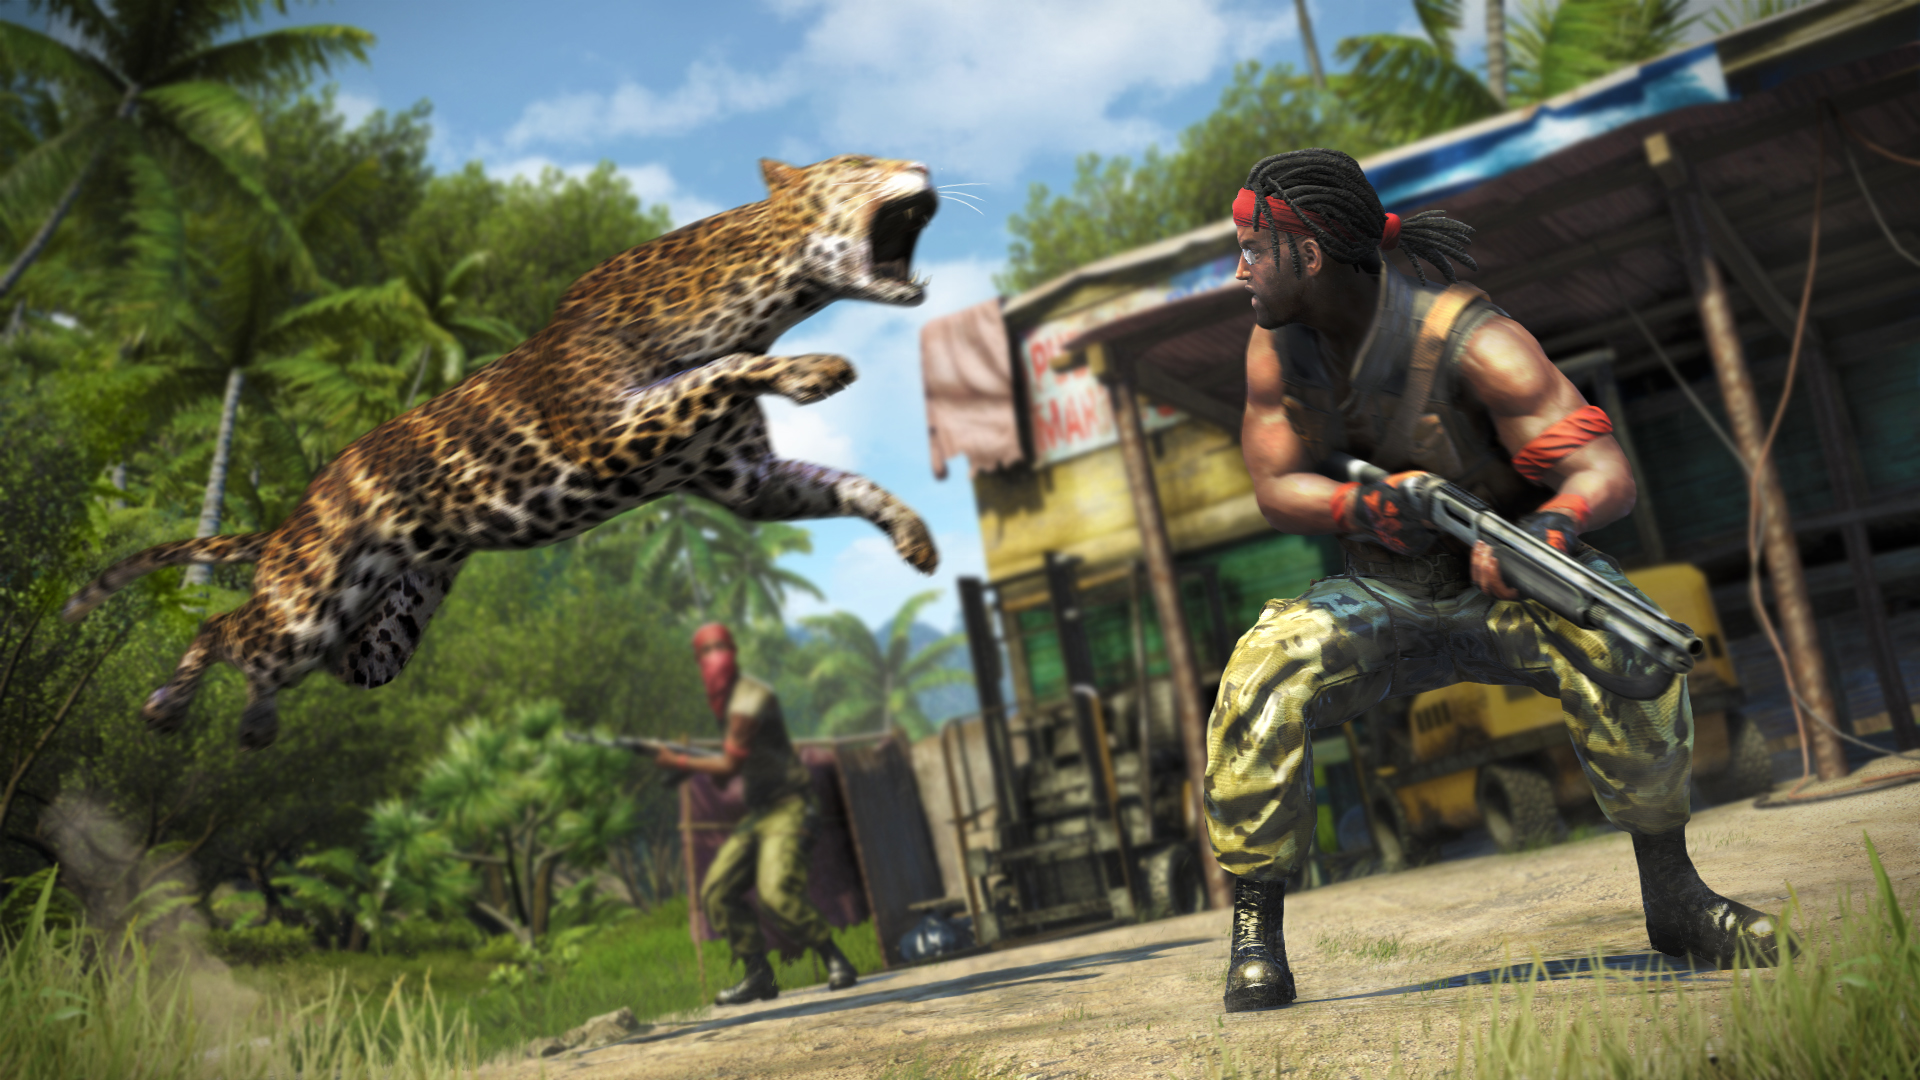 newUploads_2012_0815_5b4951fa675ed237c31032336e02136f_120815_10am_FC3_screen_SP_leopard_attack_2_Gamescom